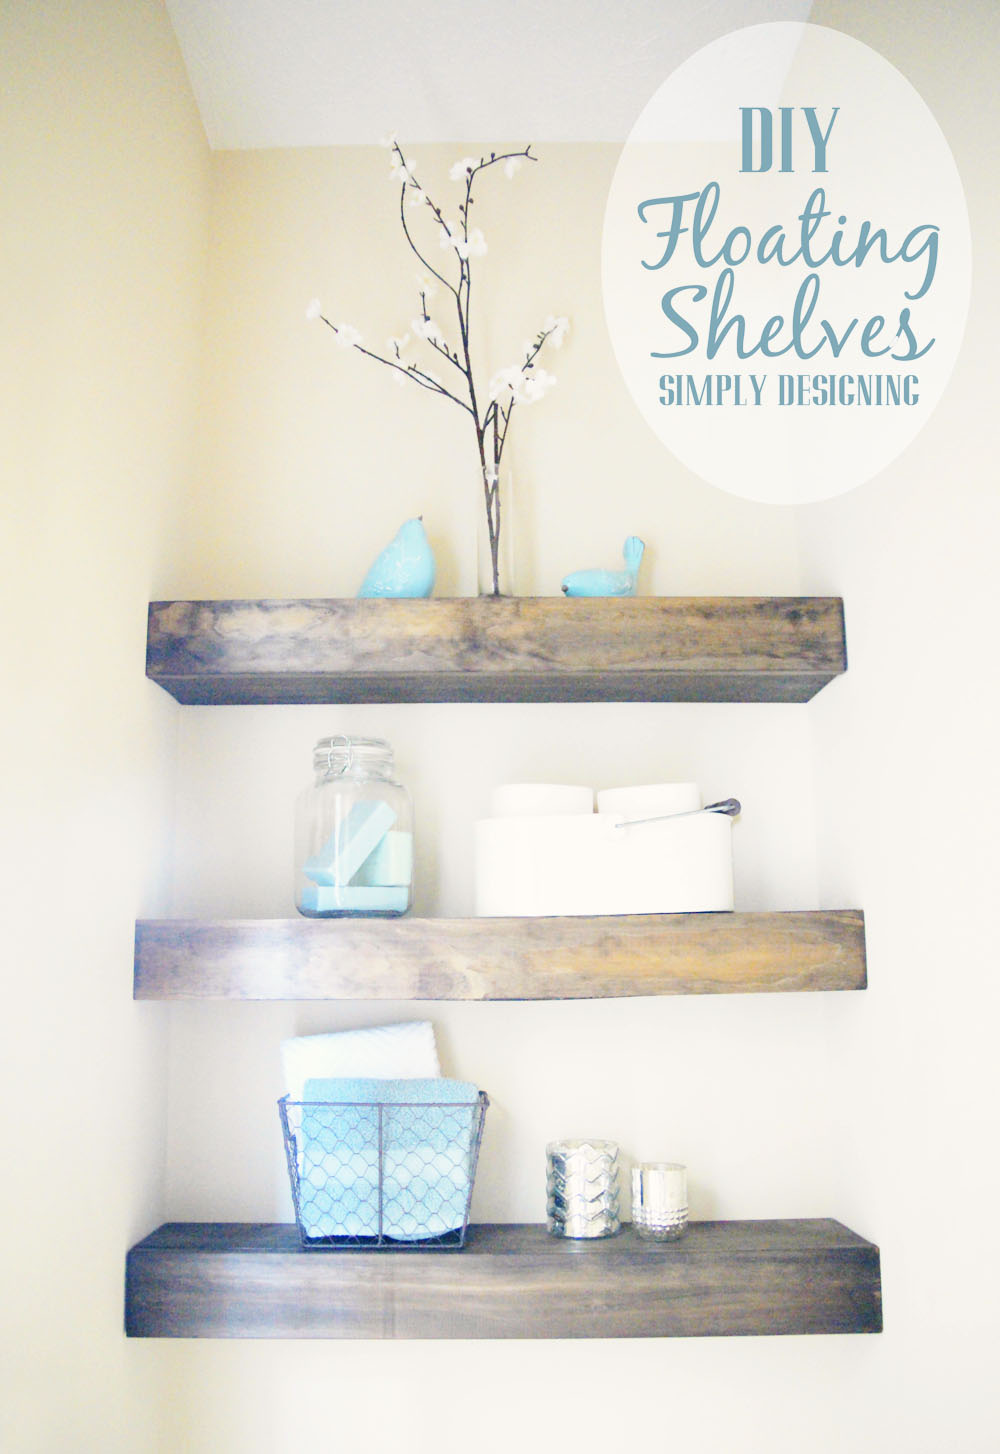 diy floating shelves how measure cut and install simple shelf plans are really easy make they the perfect cabinet hanger corner for media equipment lee valley brackets rustic wood